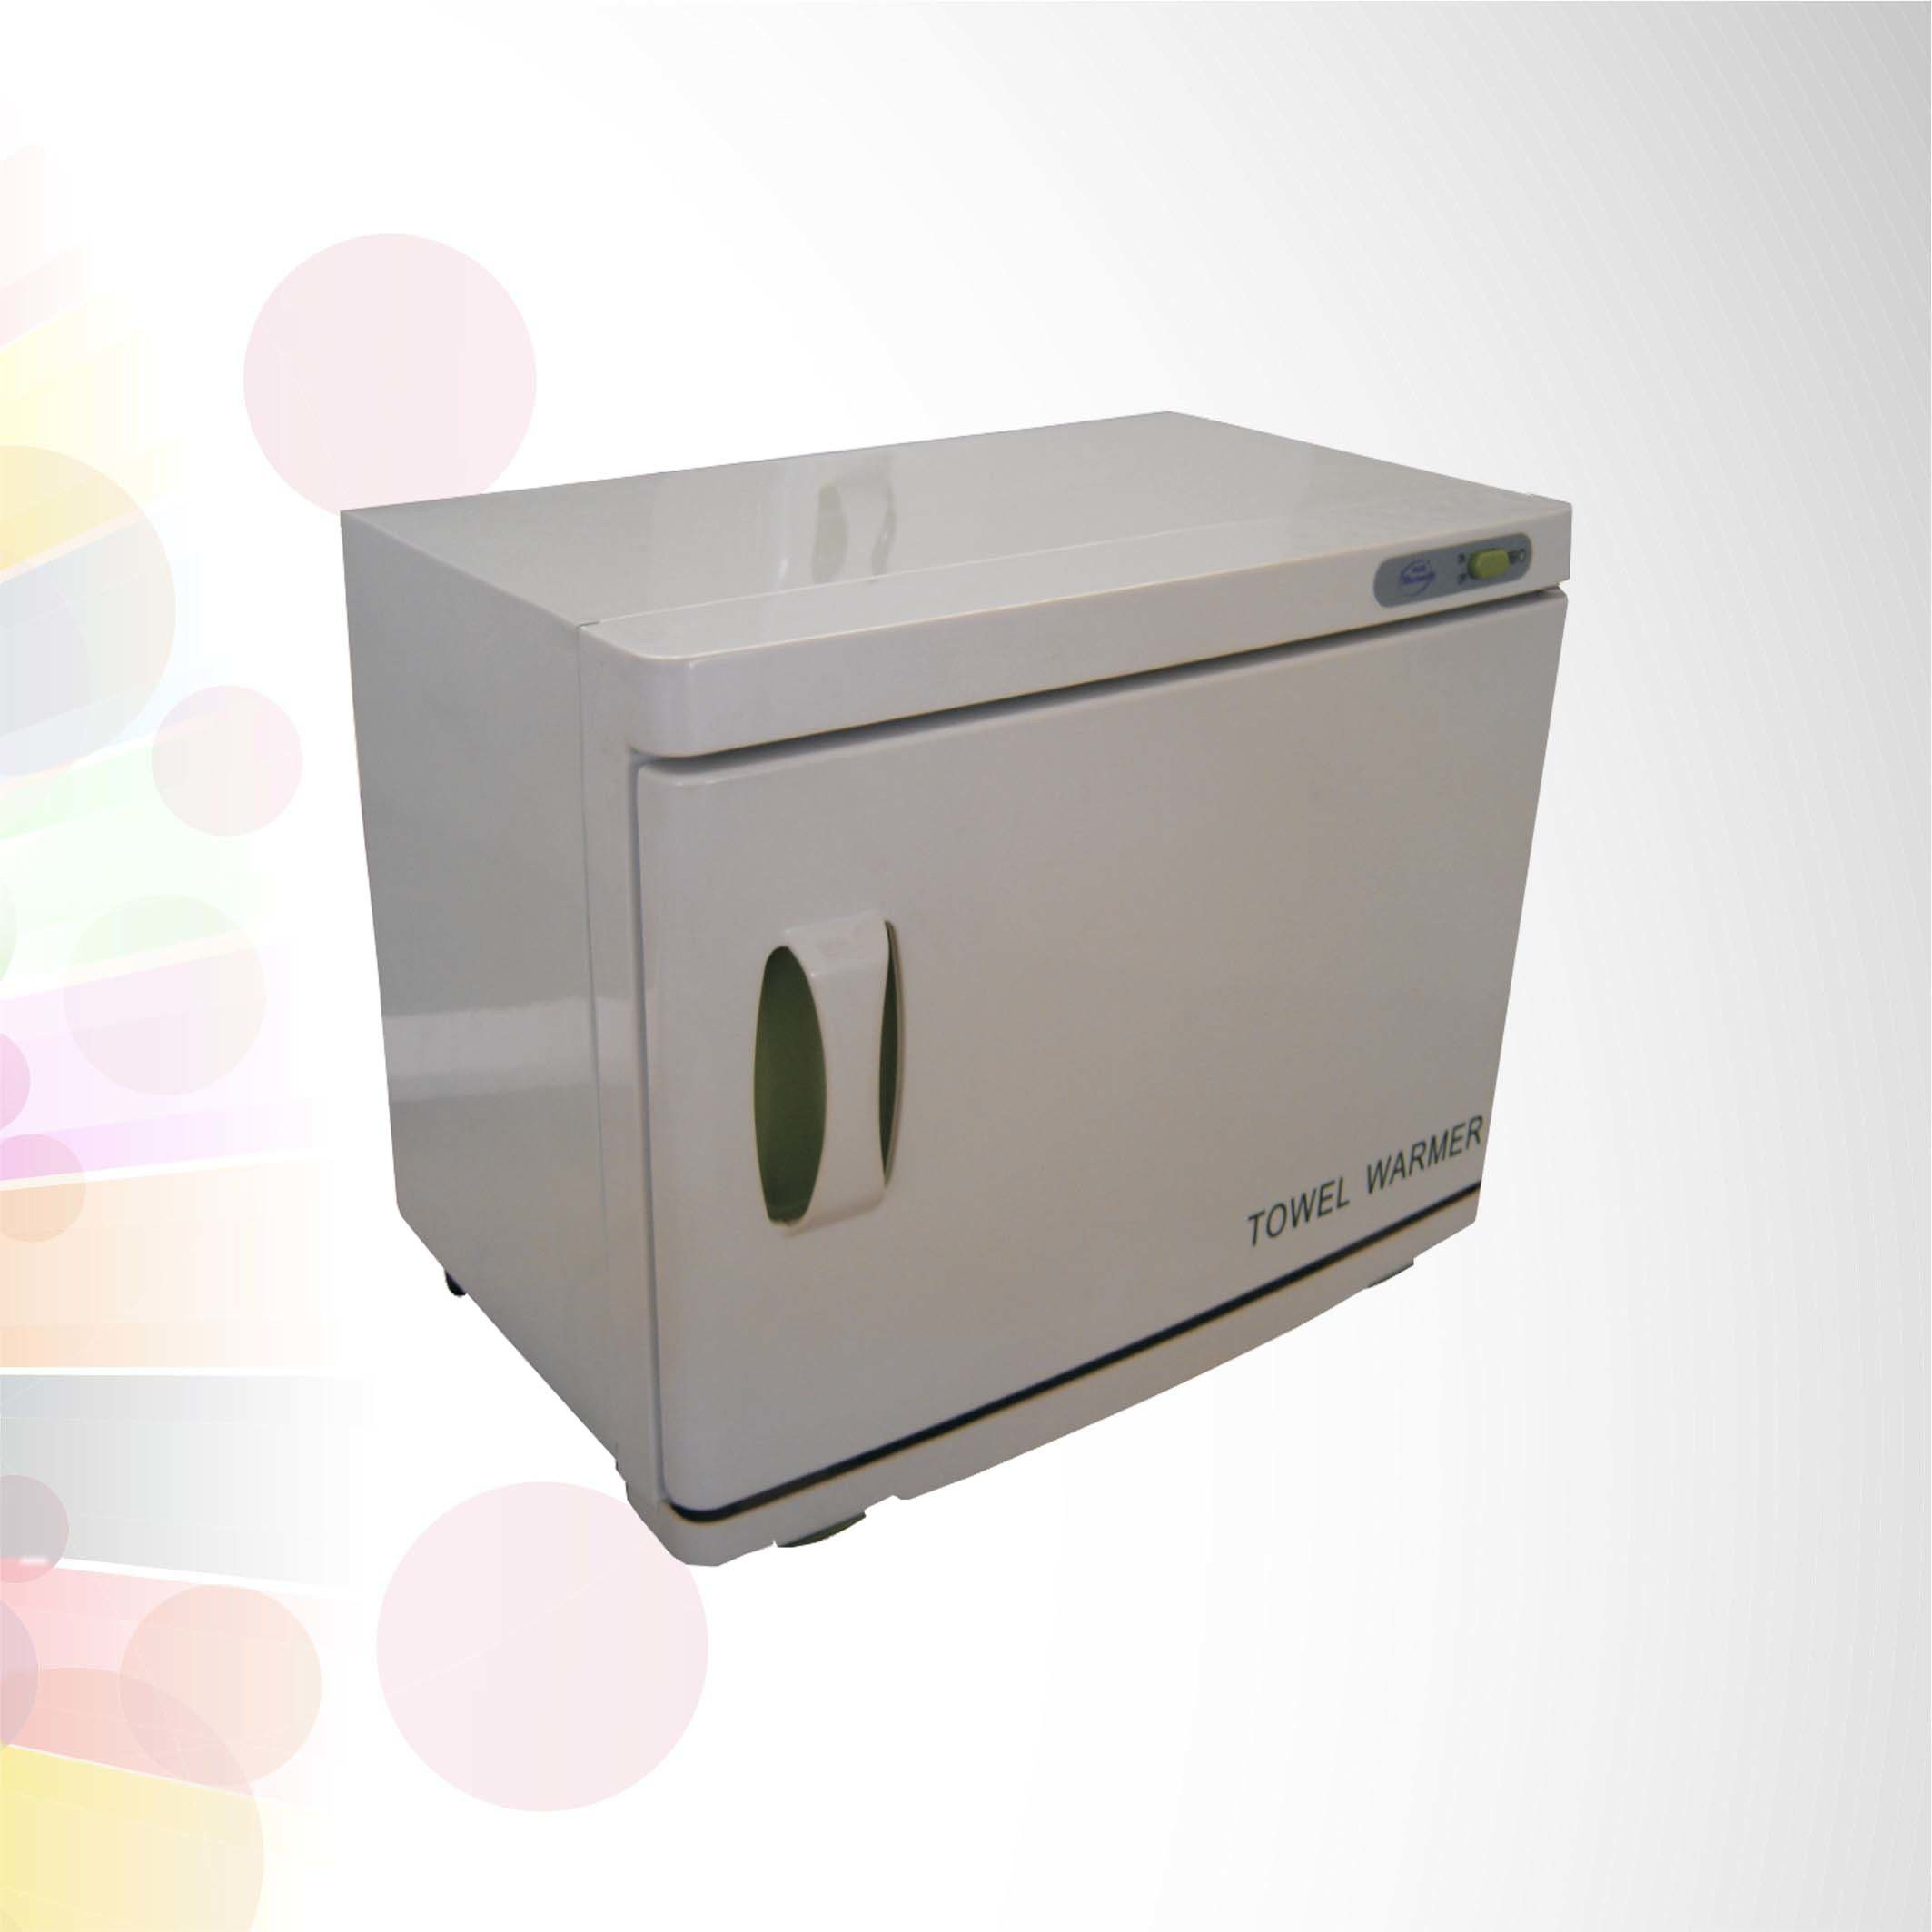 Portable Towel Warmer For Beauty Salons